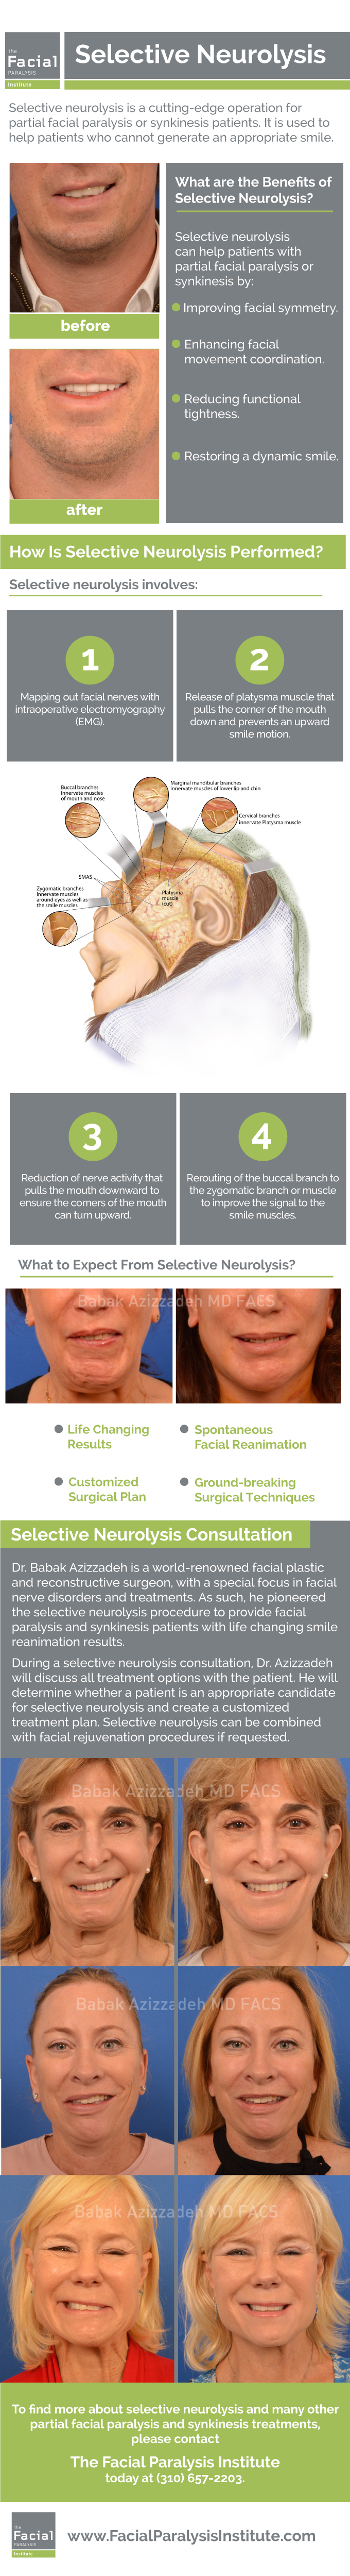 Selective Neurolysis Surgery Infographic